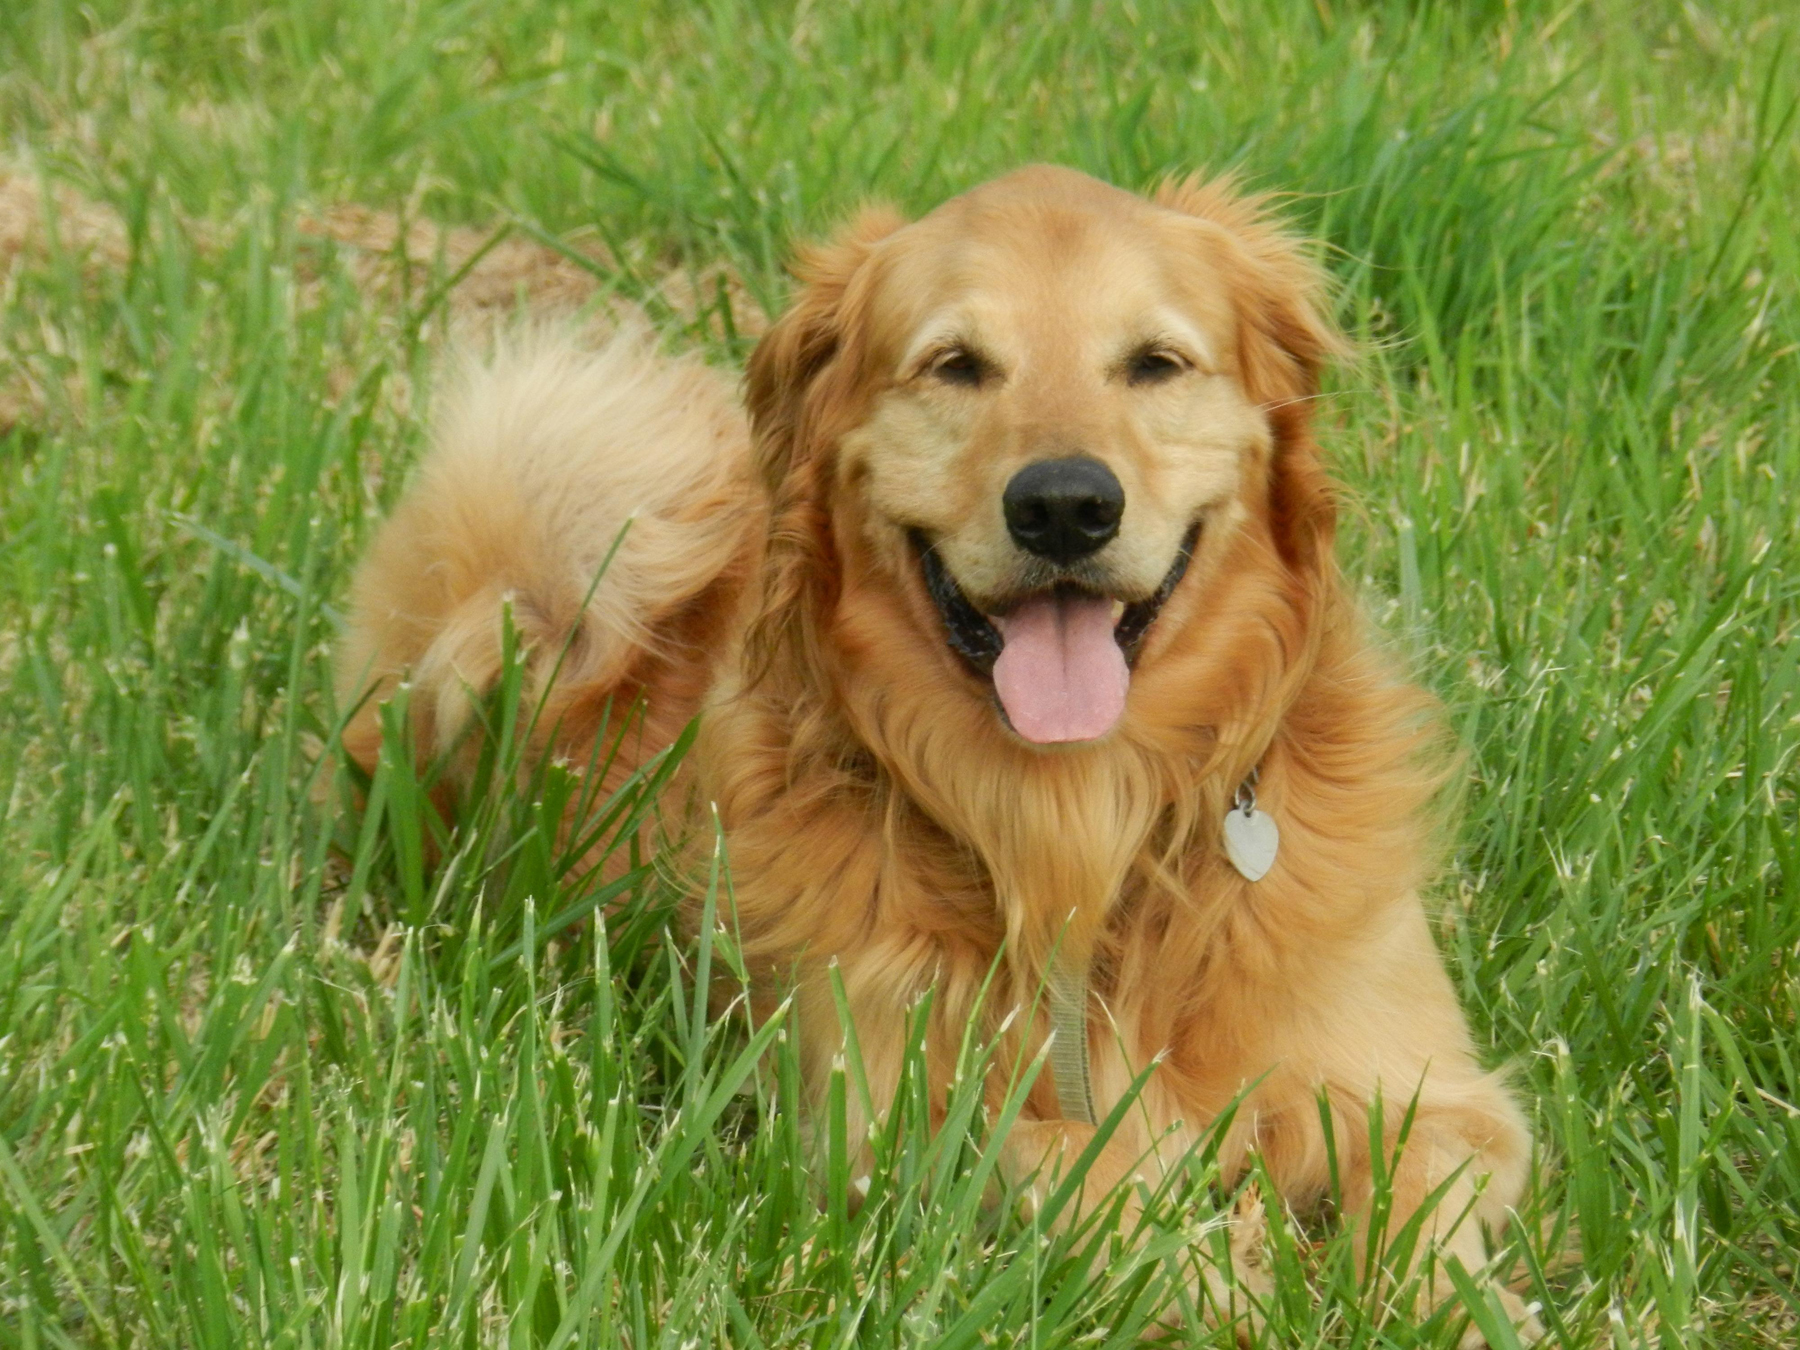 Signs your dog might have 'Pica' image